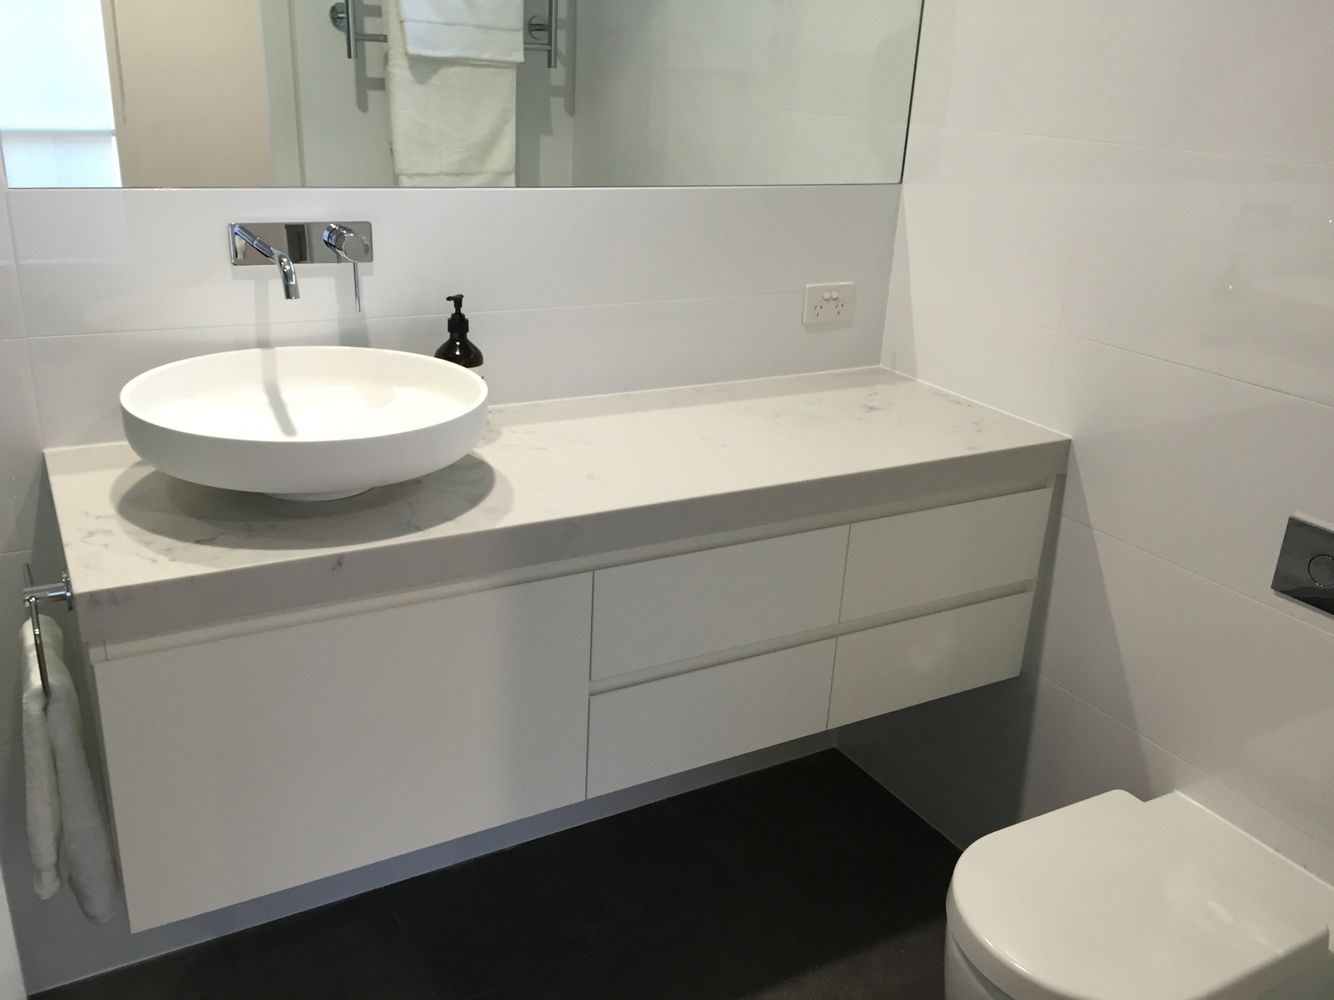 Bathroom, Renovation, Ensuite, Floating Vanity, Above Counter ...